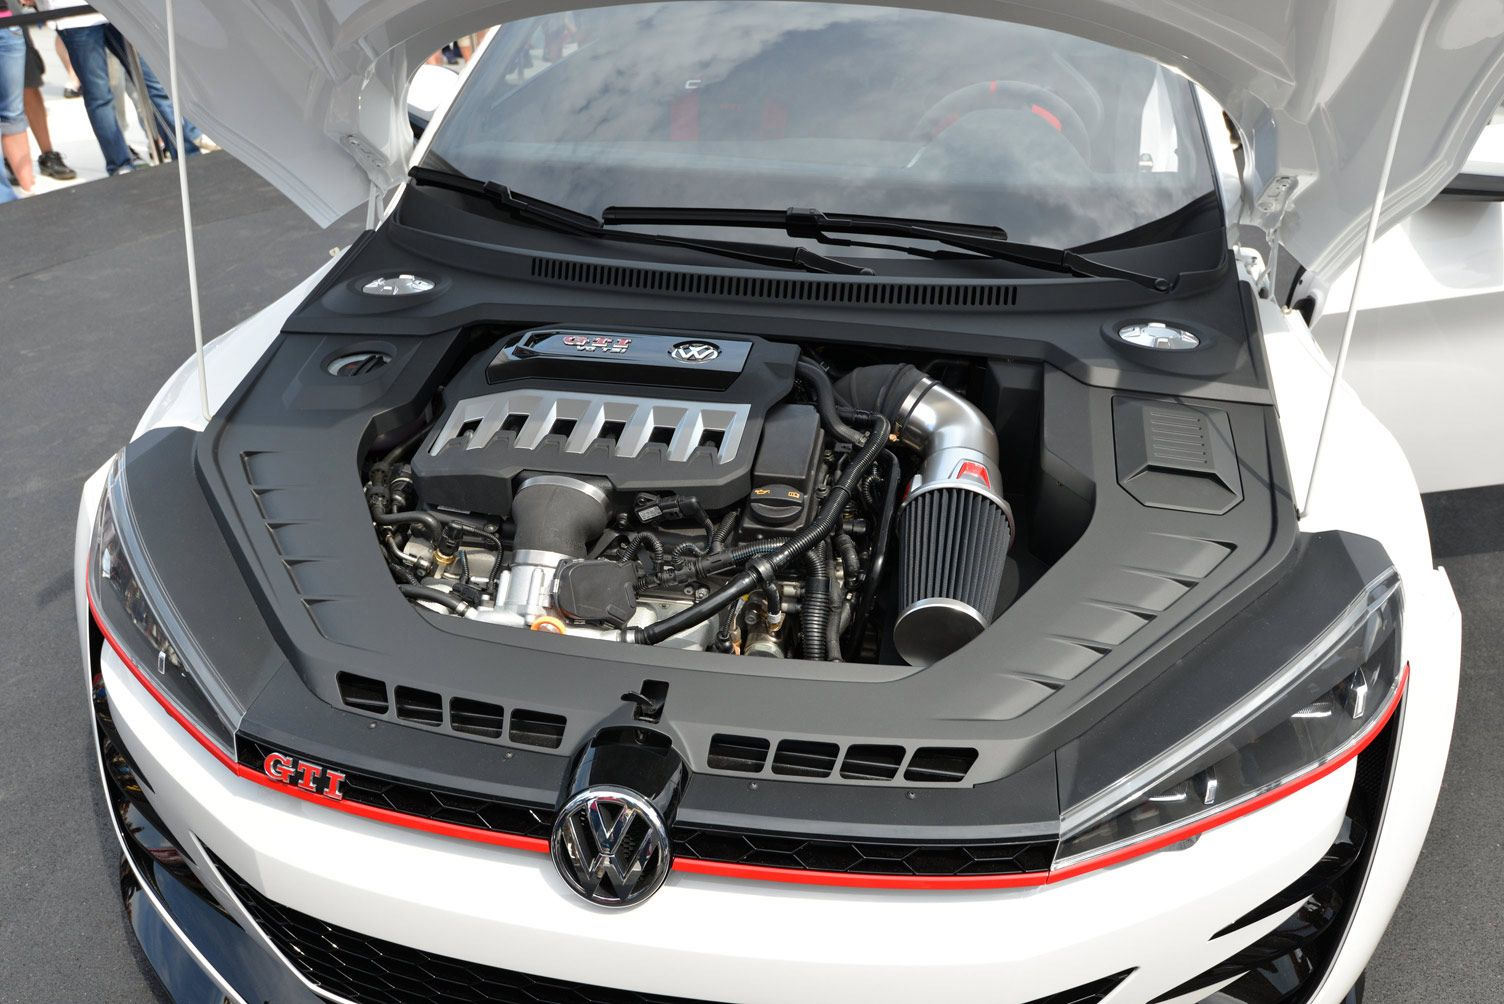 small resolution of gti debut in w rthersee volkswagen showed us a new vr6 this 3 0l 24v six cylinder could possibly replace the current 3 6l seen in such models like the